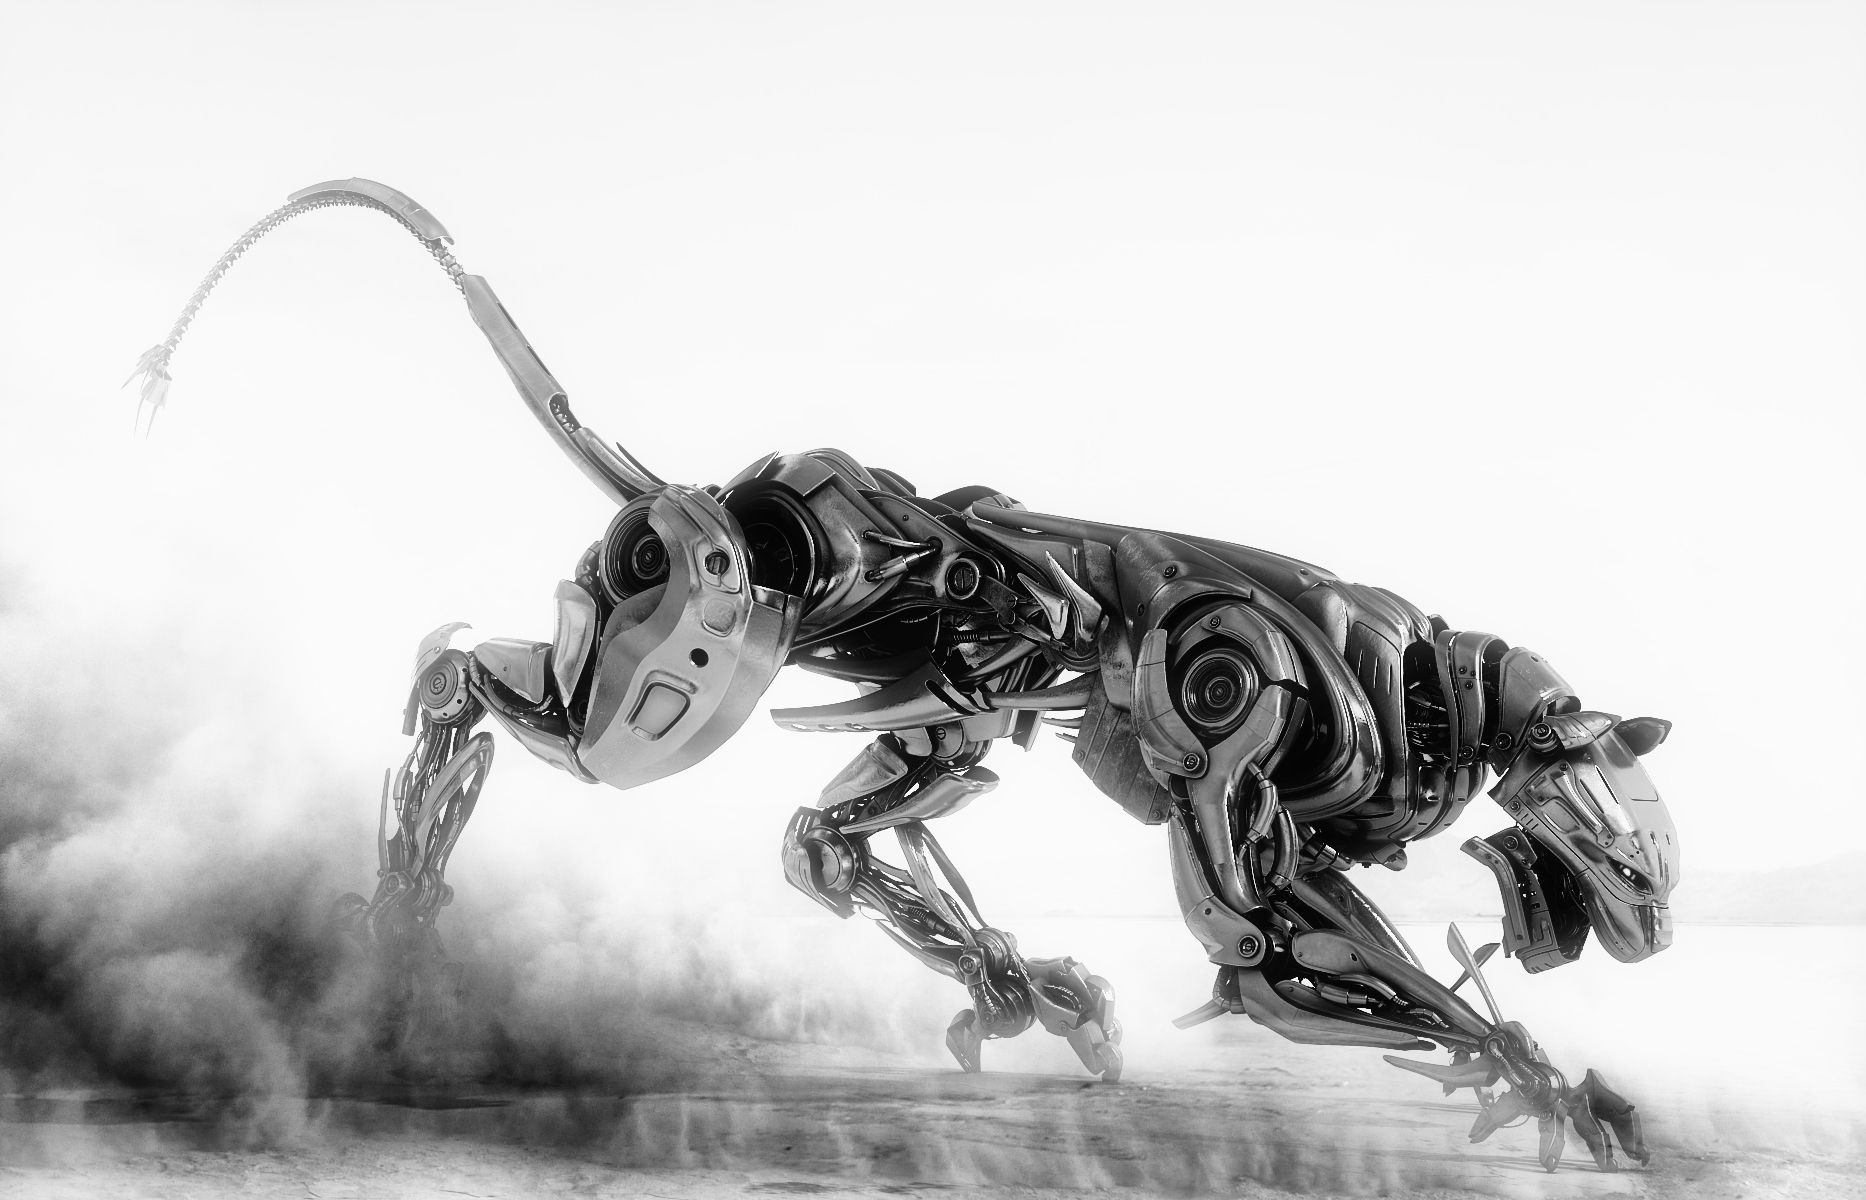 panther robot - Google Search | Photo projects | Pinterest ...